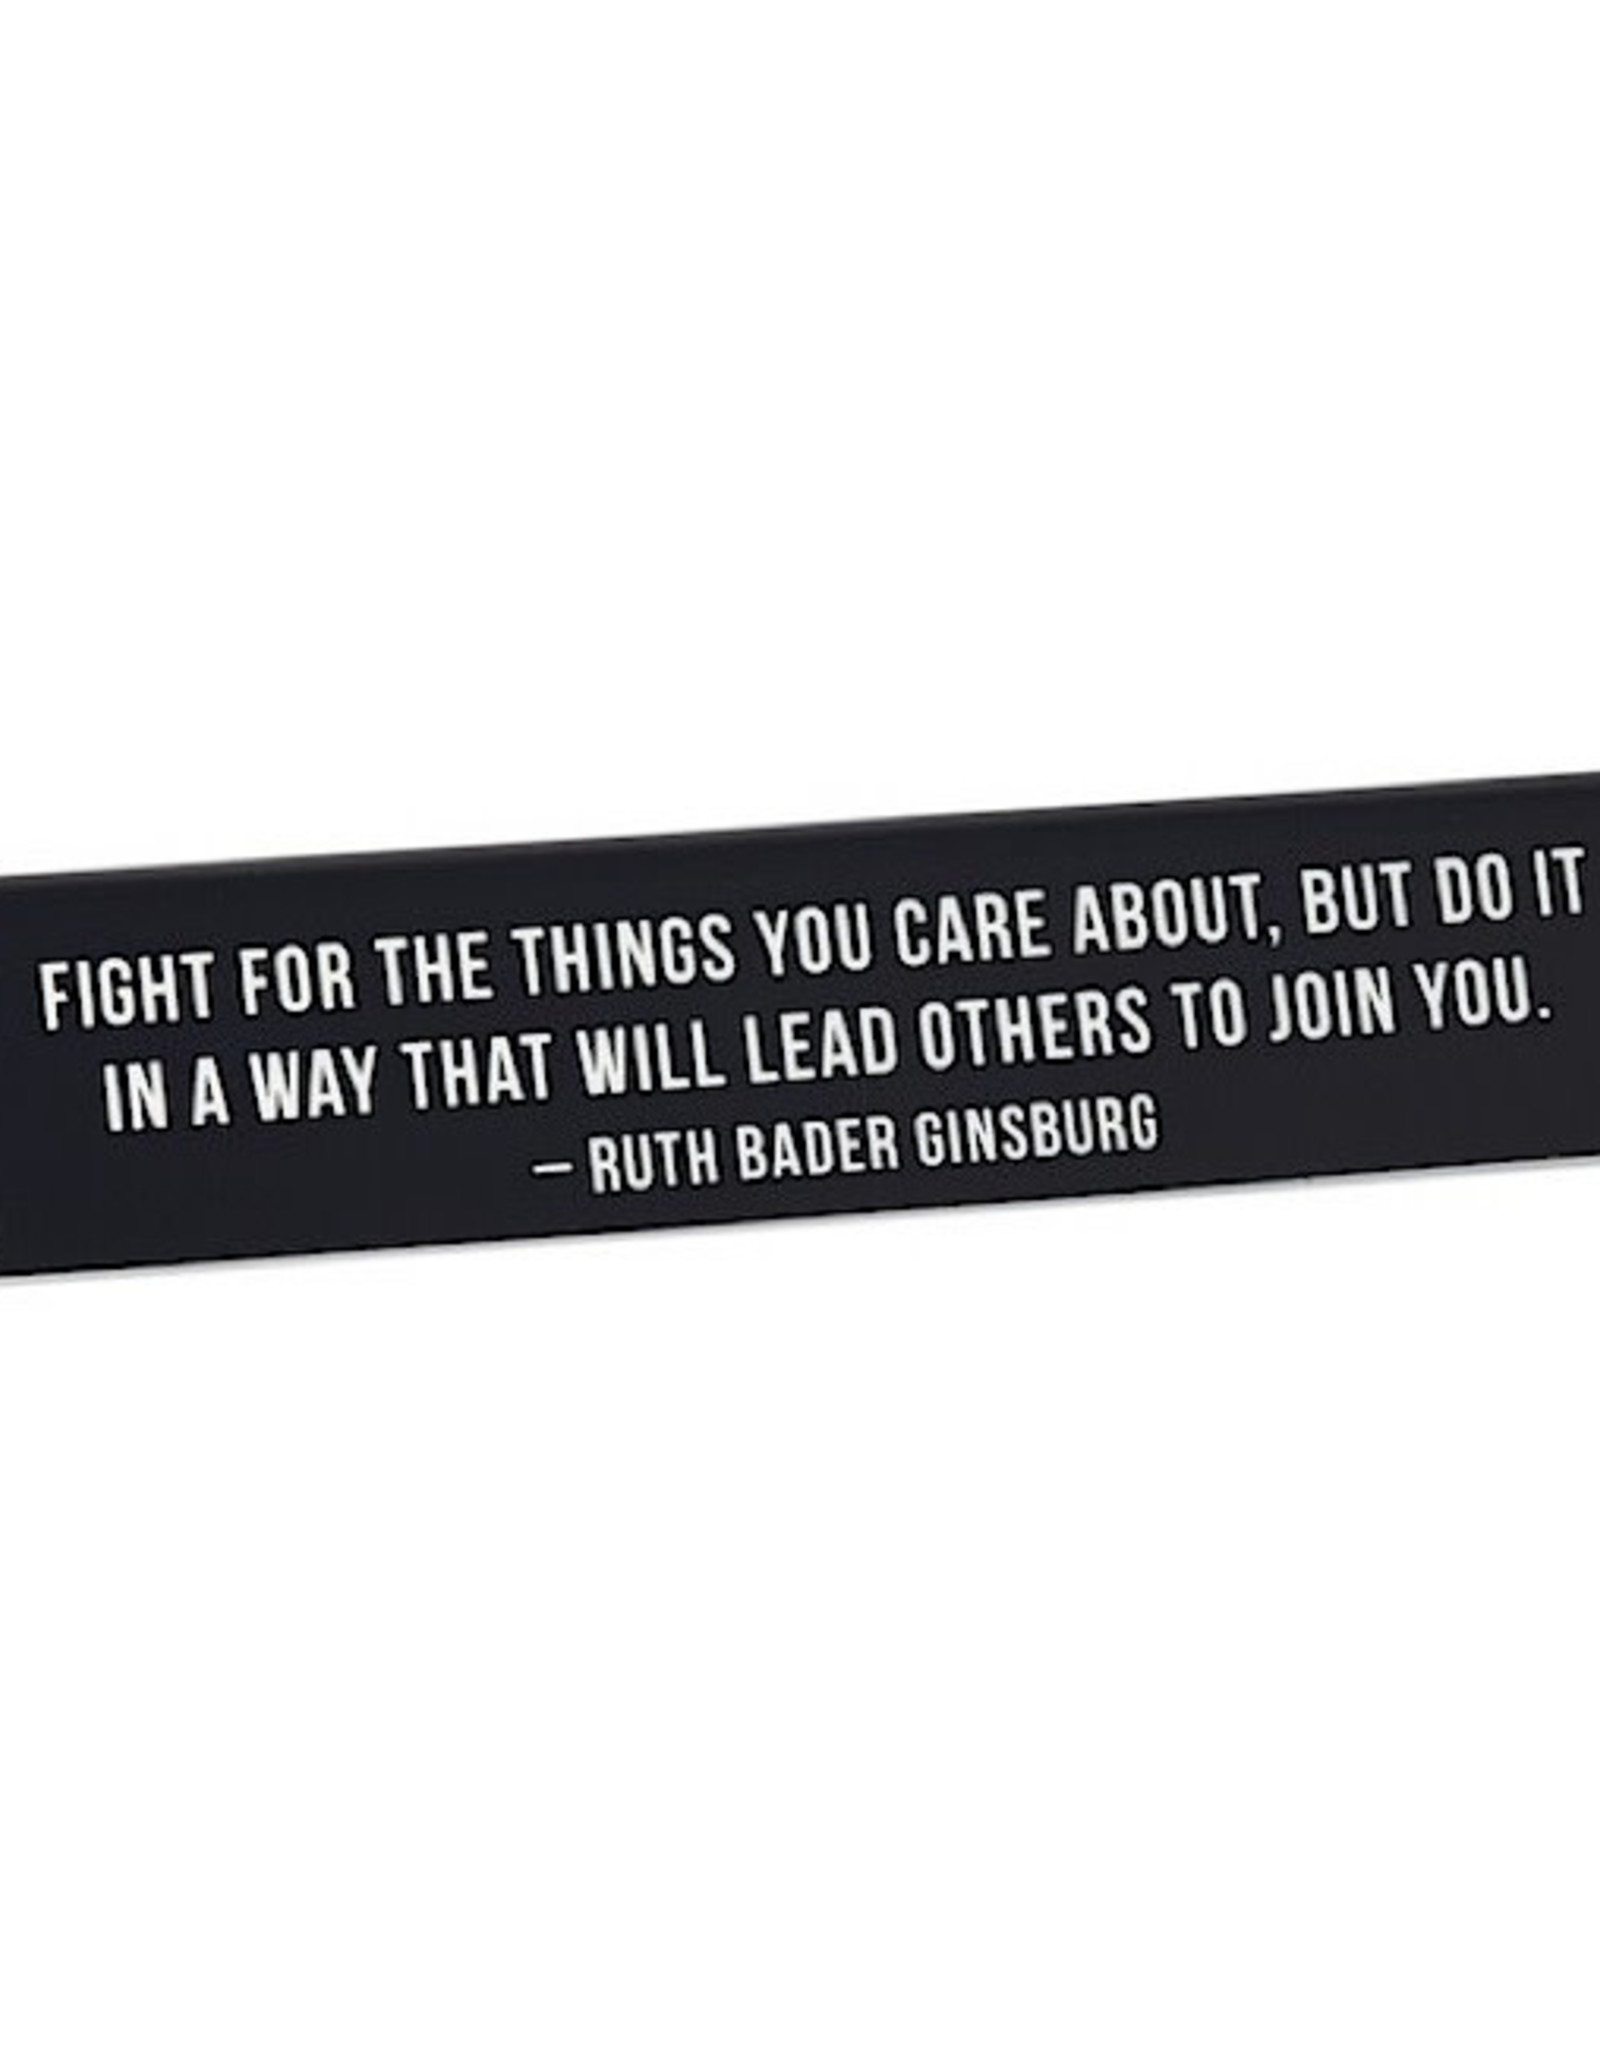 Sign (Desk) - Fight For The Things You Care About, But Do It In A Way That Will Lead Others To Join You - Ruth Bader Ginsburg